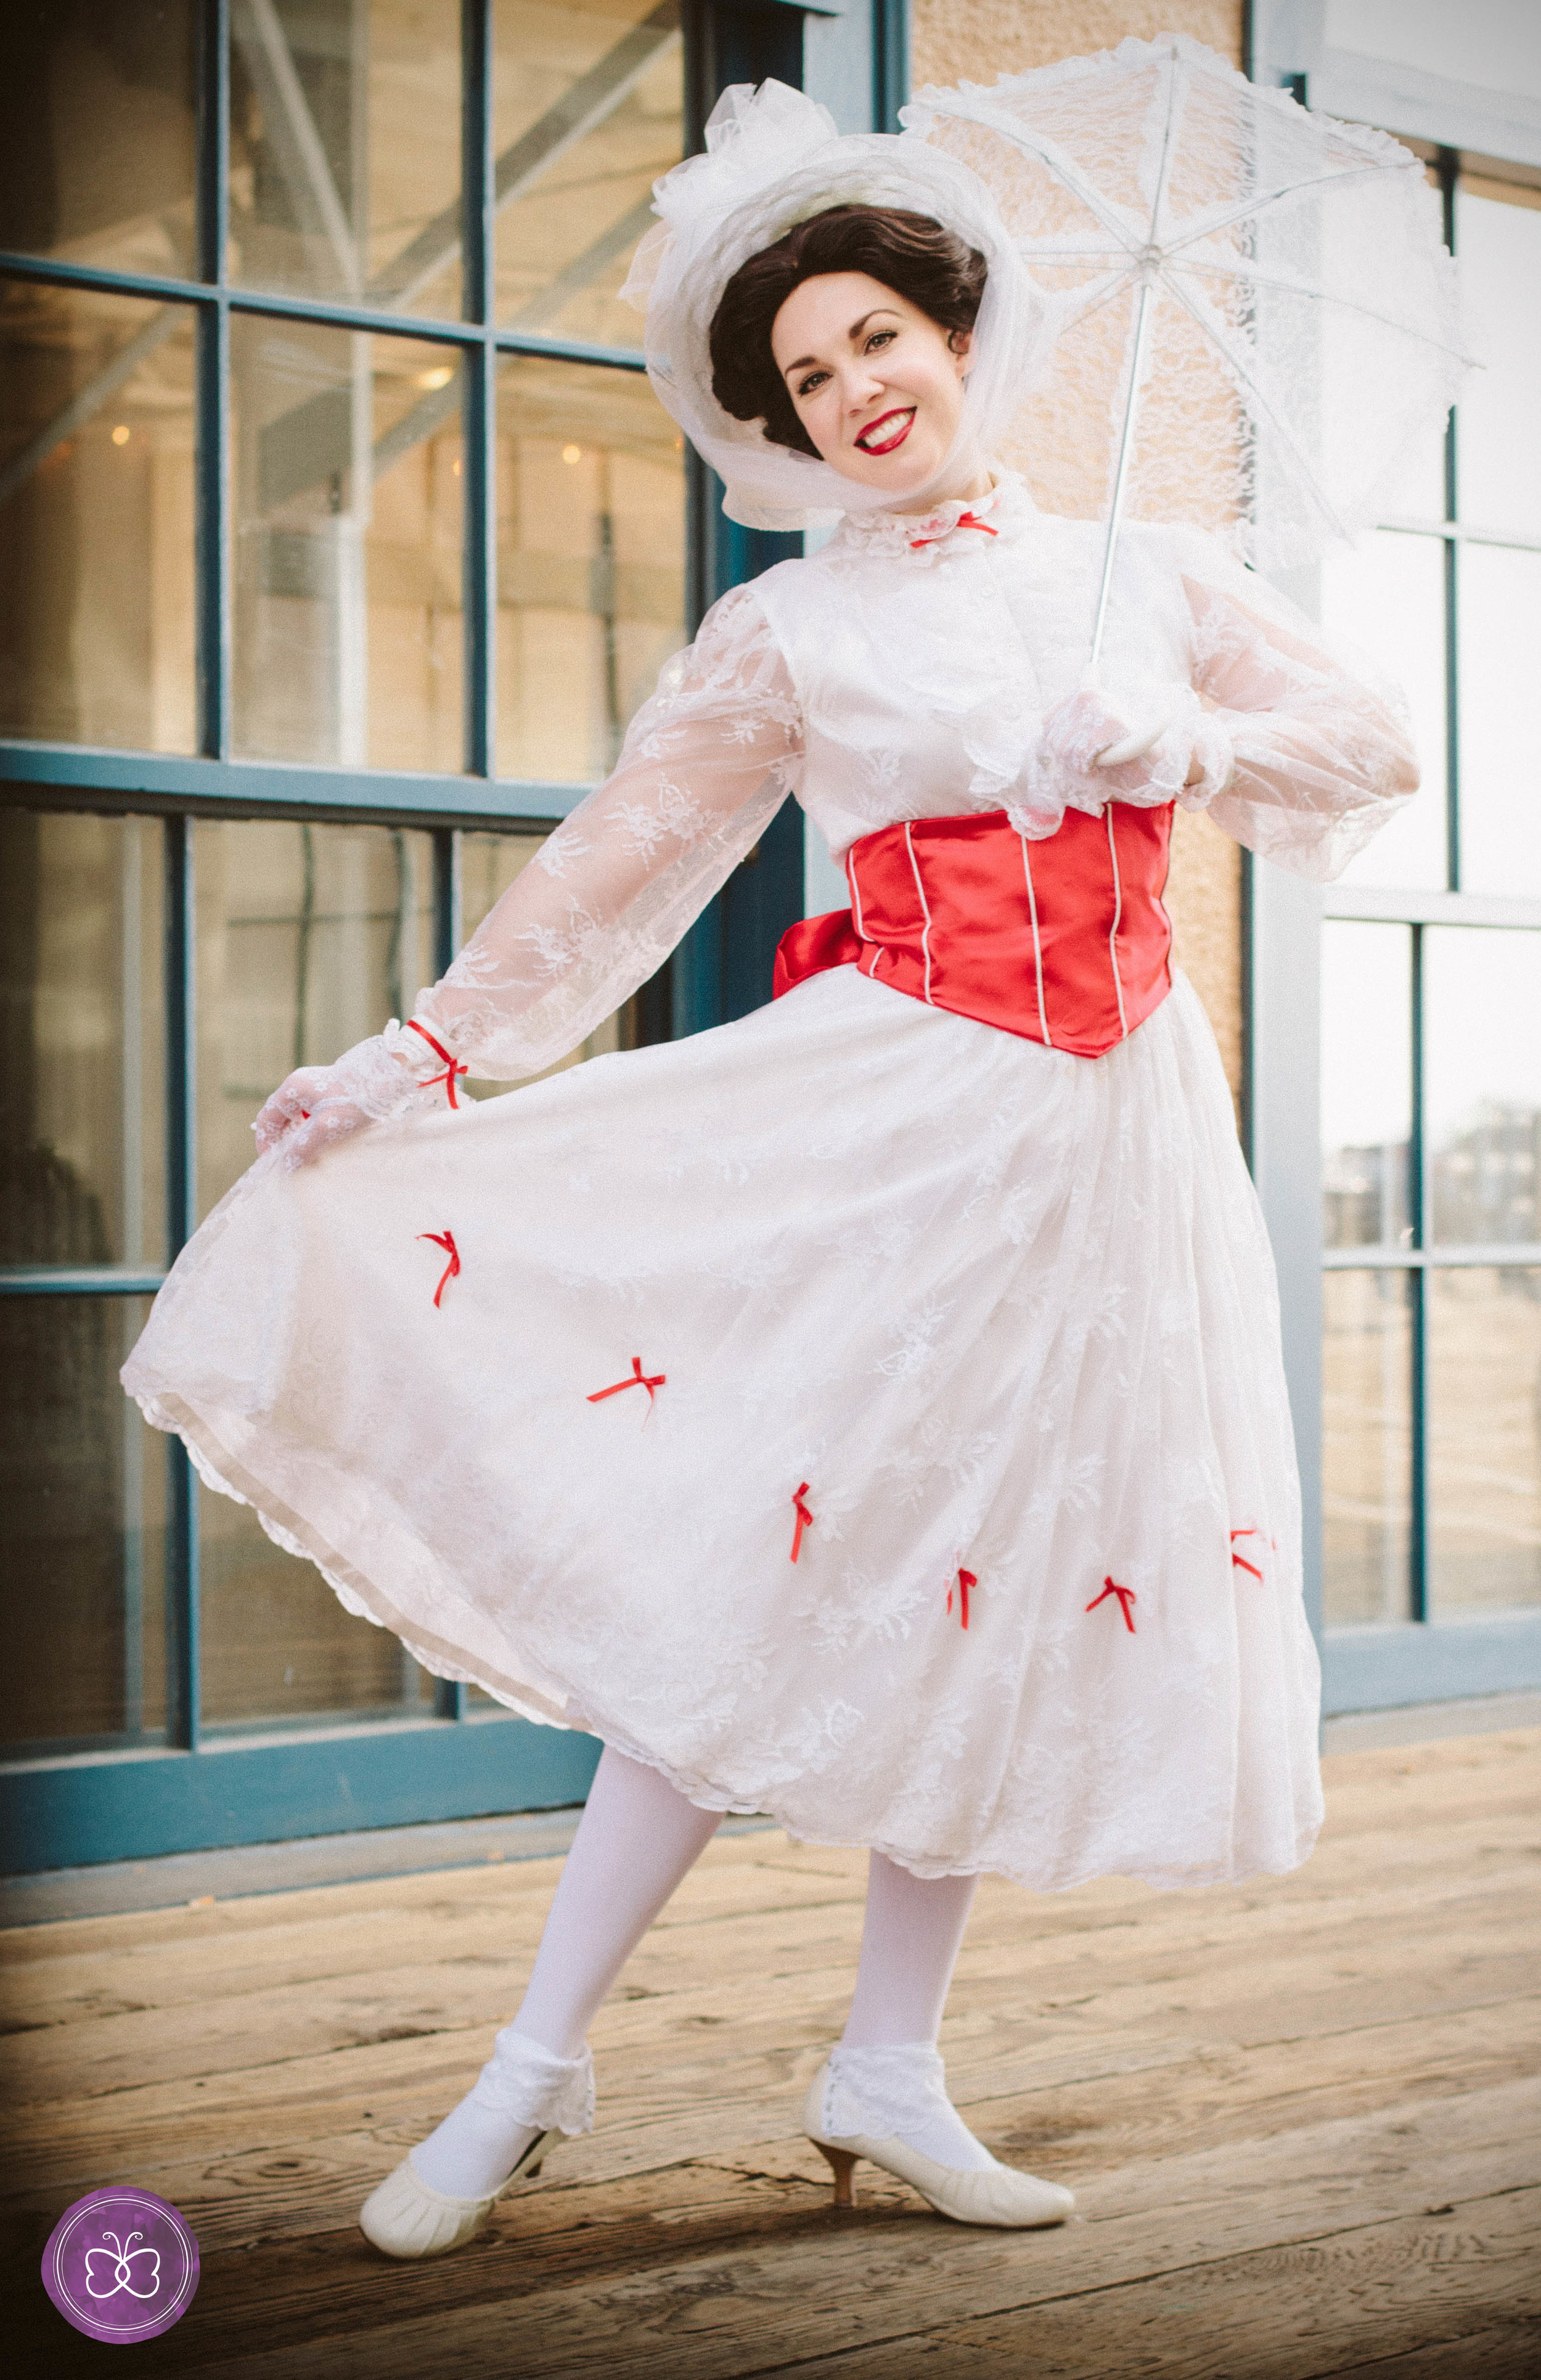 mary poppins jolly holiday party character los angeles